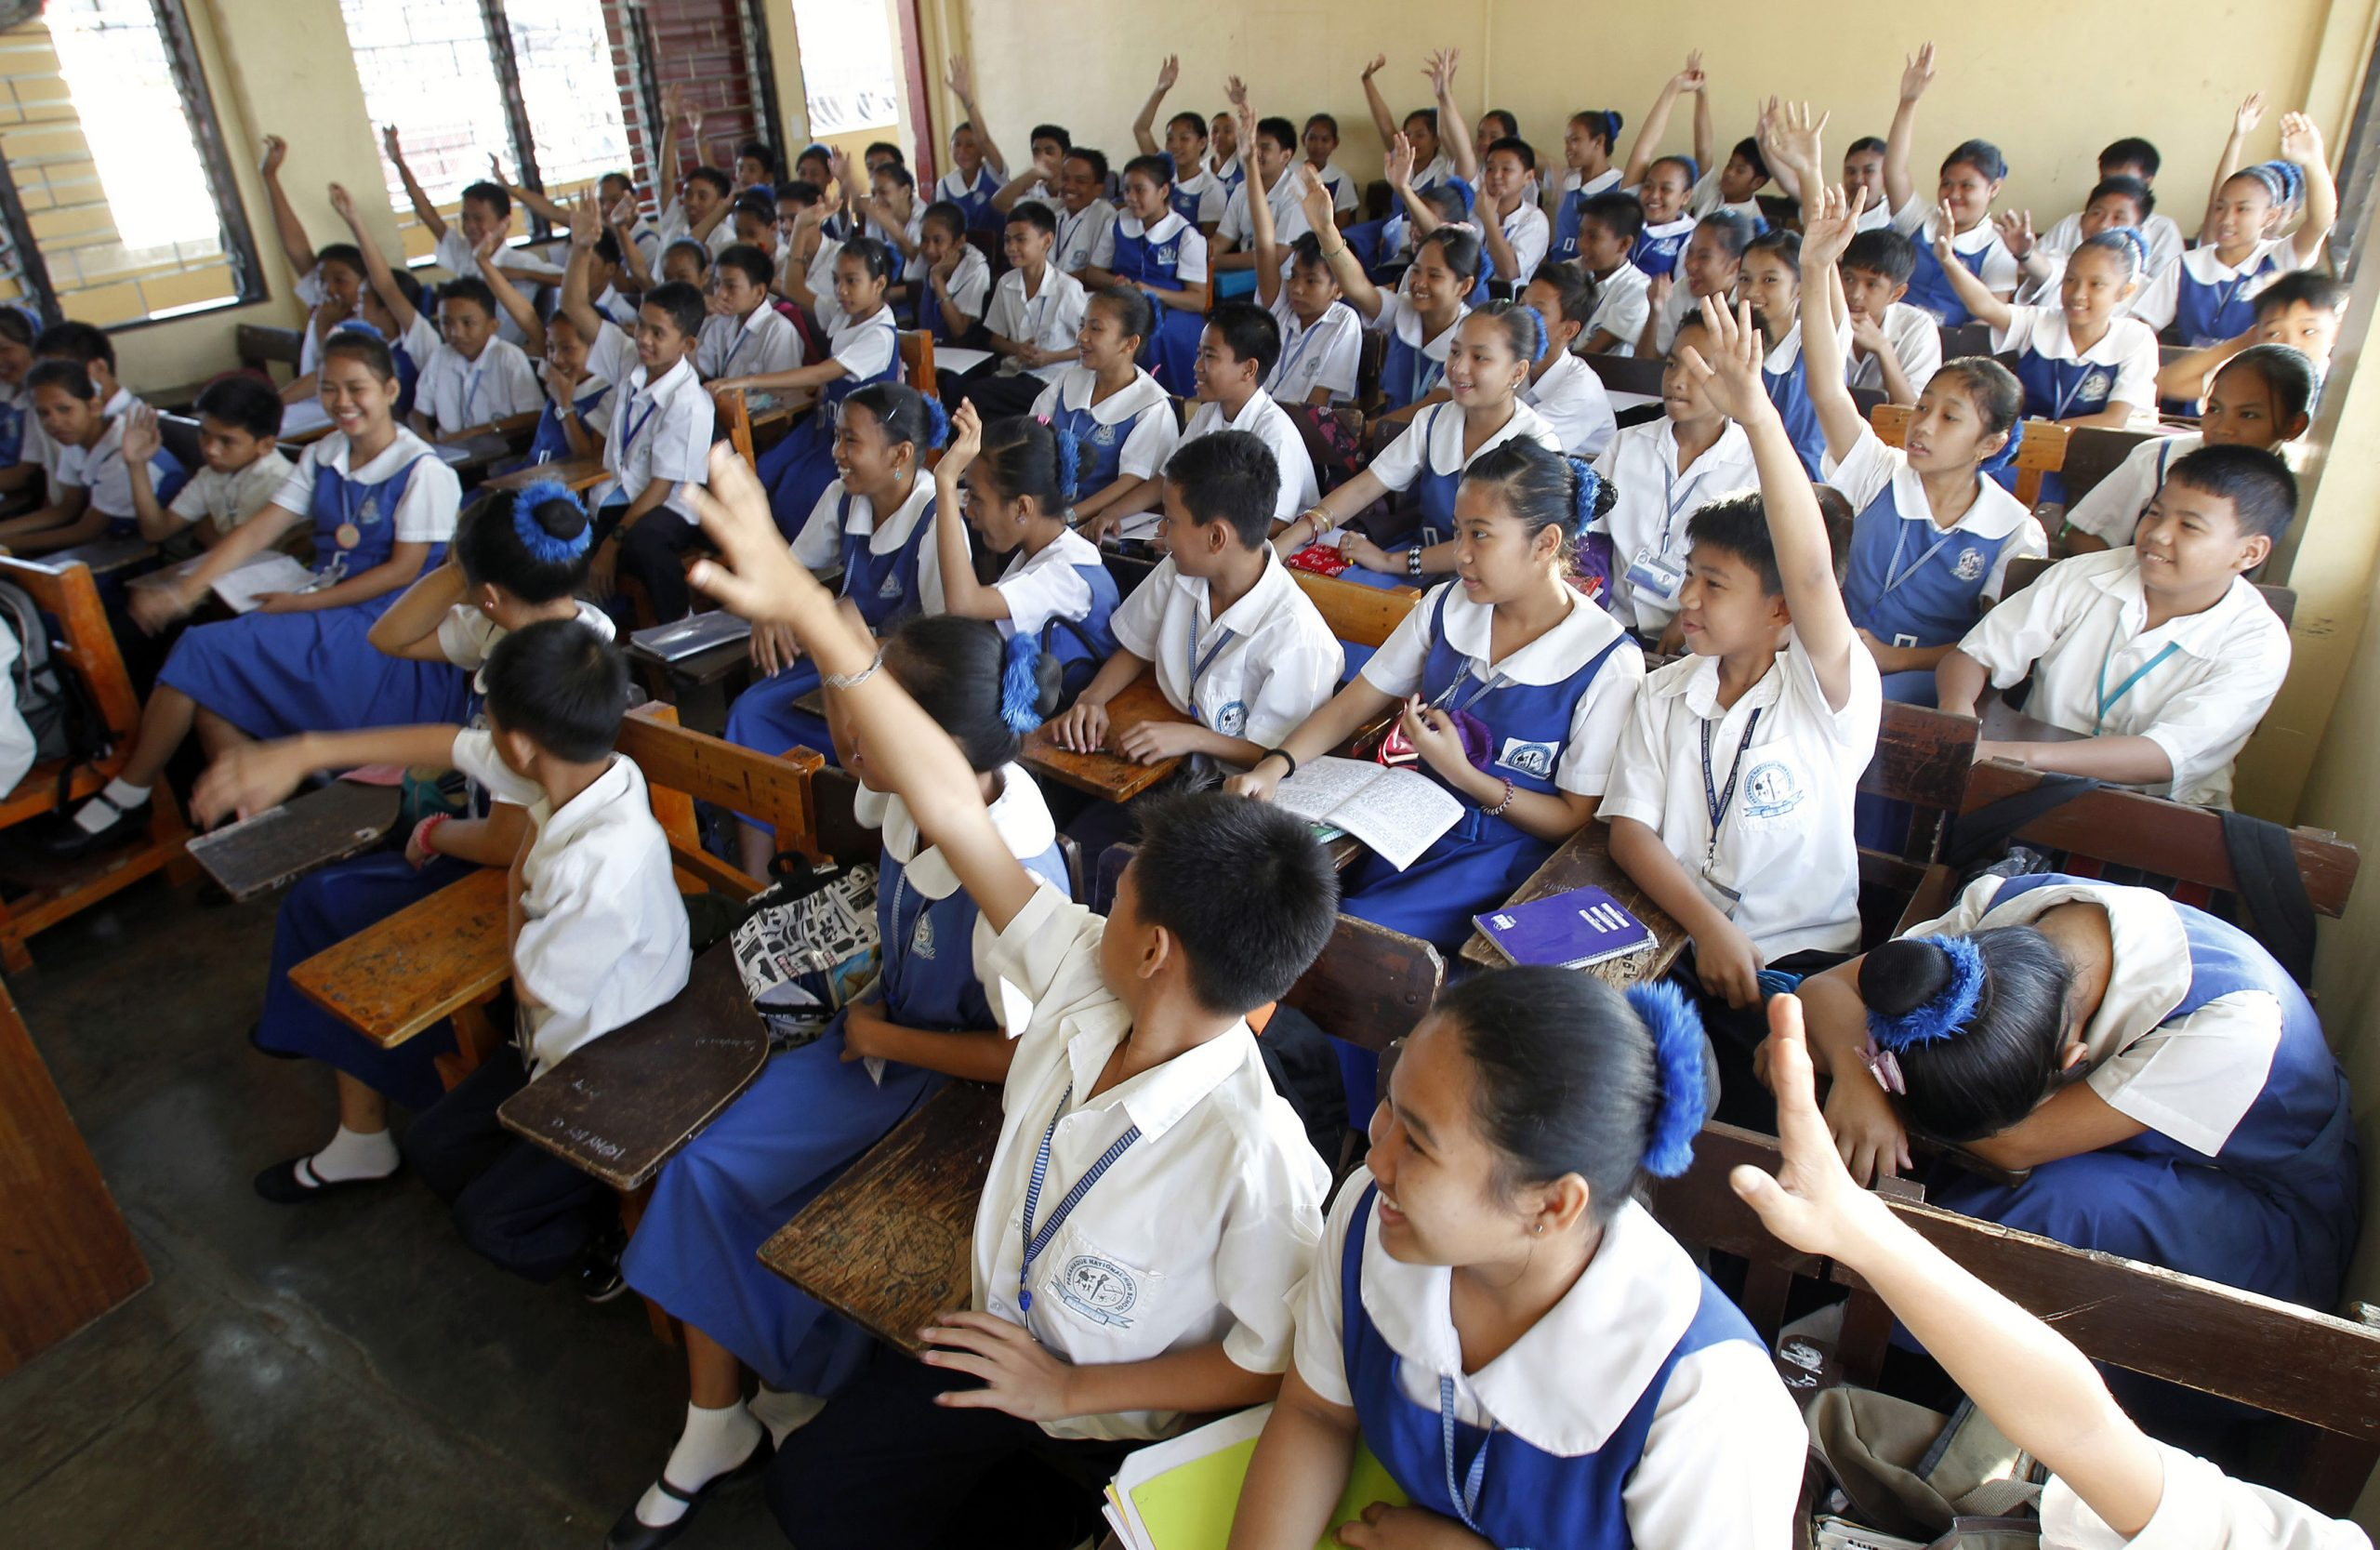 Students raise their hands to answer questions in a classroom at a public high school in Paranaque city